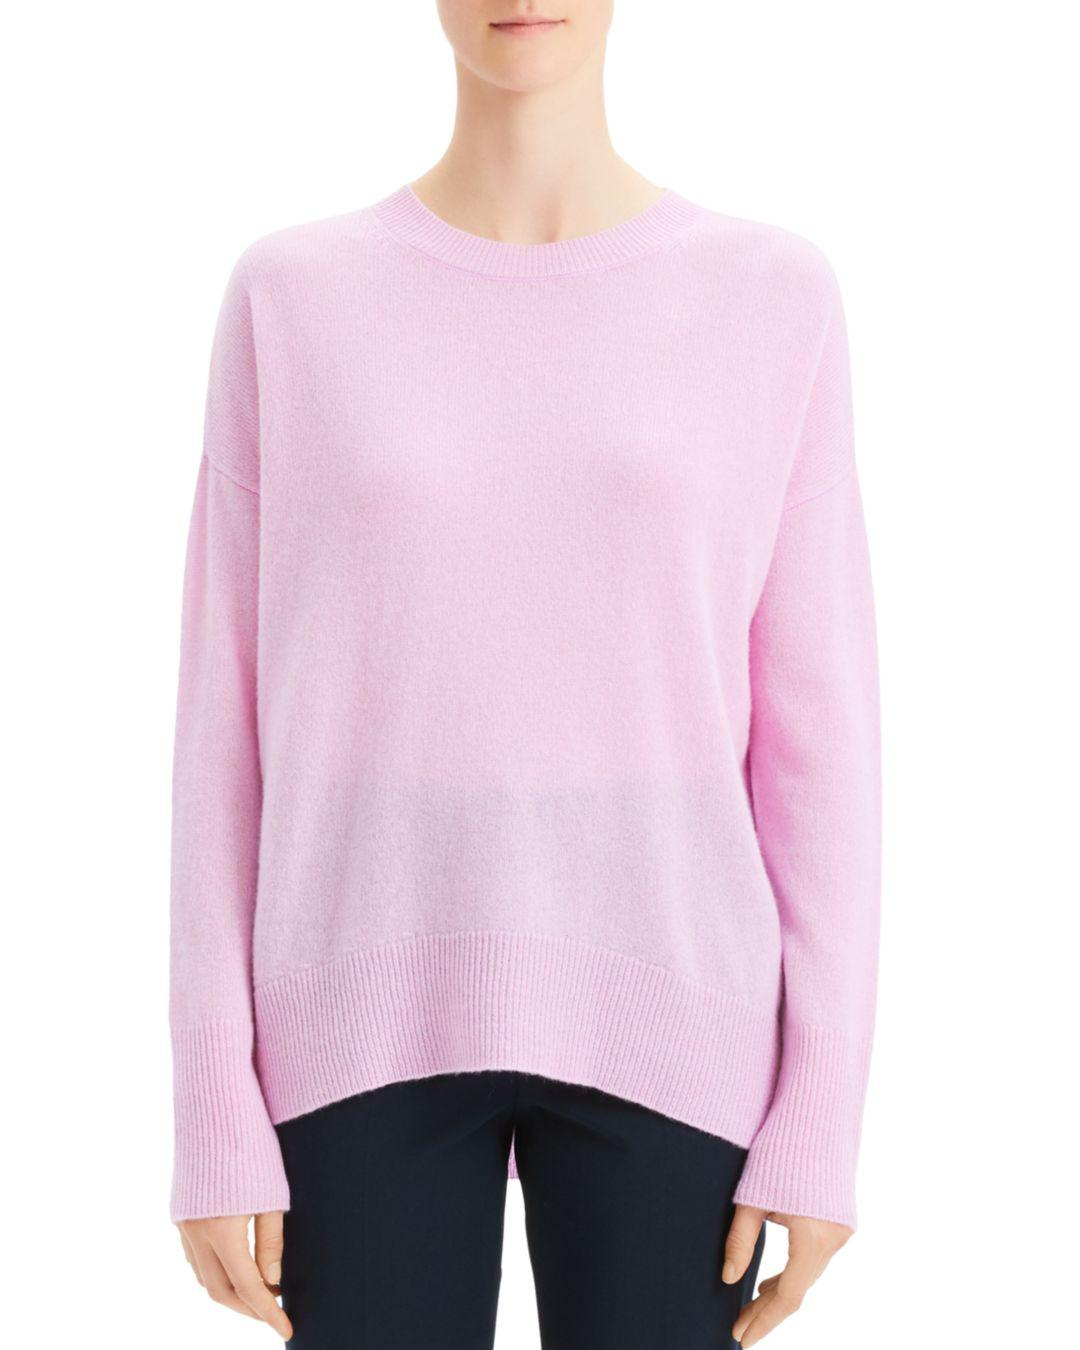 d0ad4d4a93d Lyst - Theory Karenia Cashmere Sweater in Pink - Save 55%